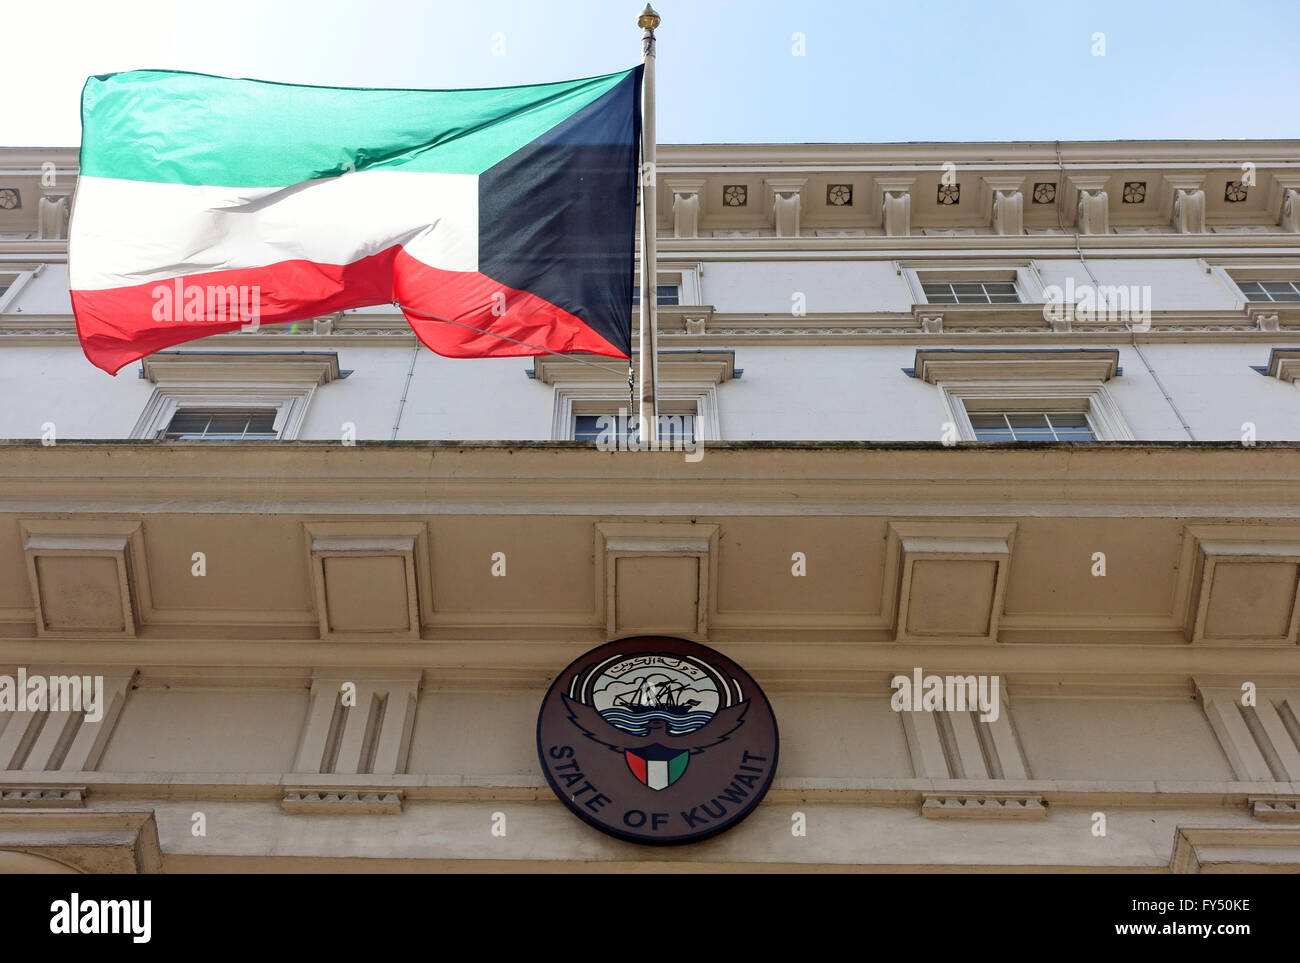 Embassy of Kuwait, Knightsbridge, London - Stock Image